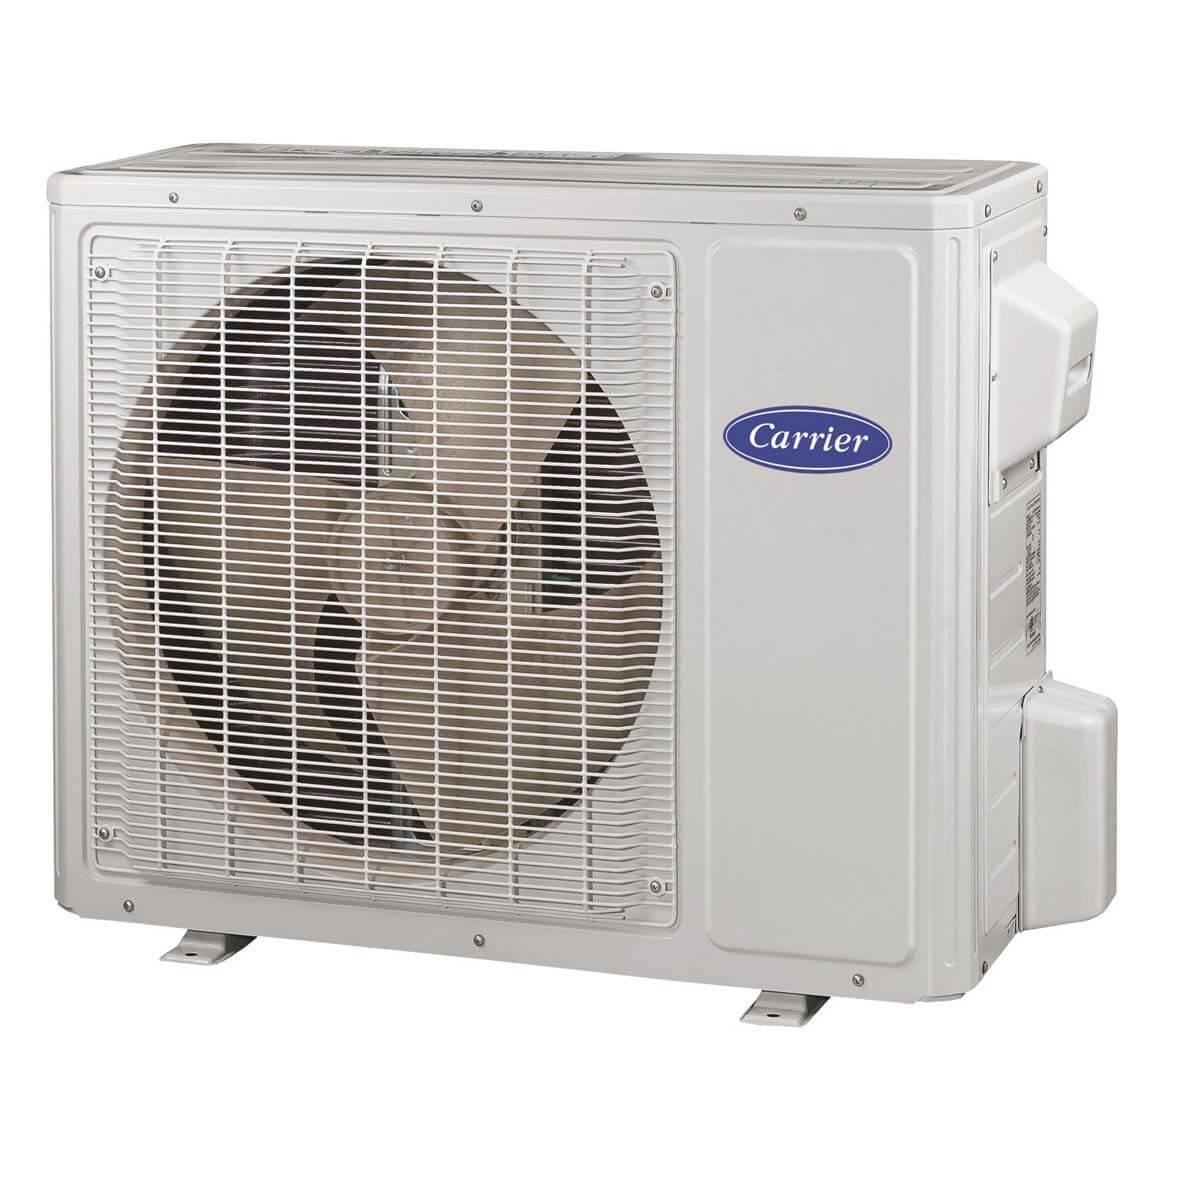 PerformanceTM Heat Pump Model: 38GVQ